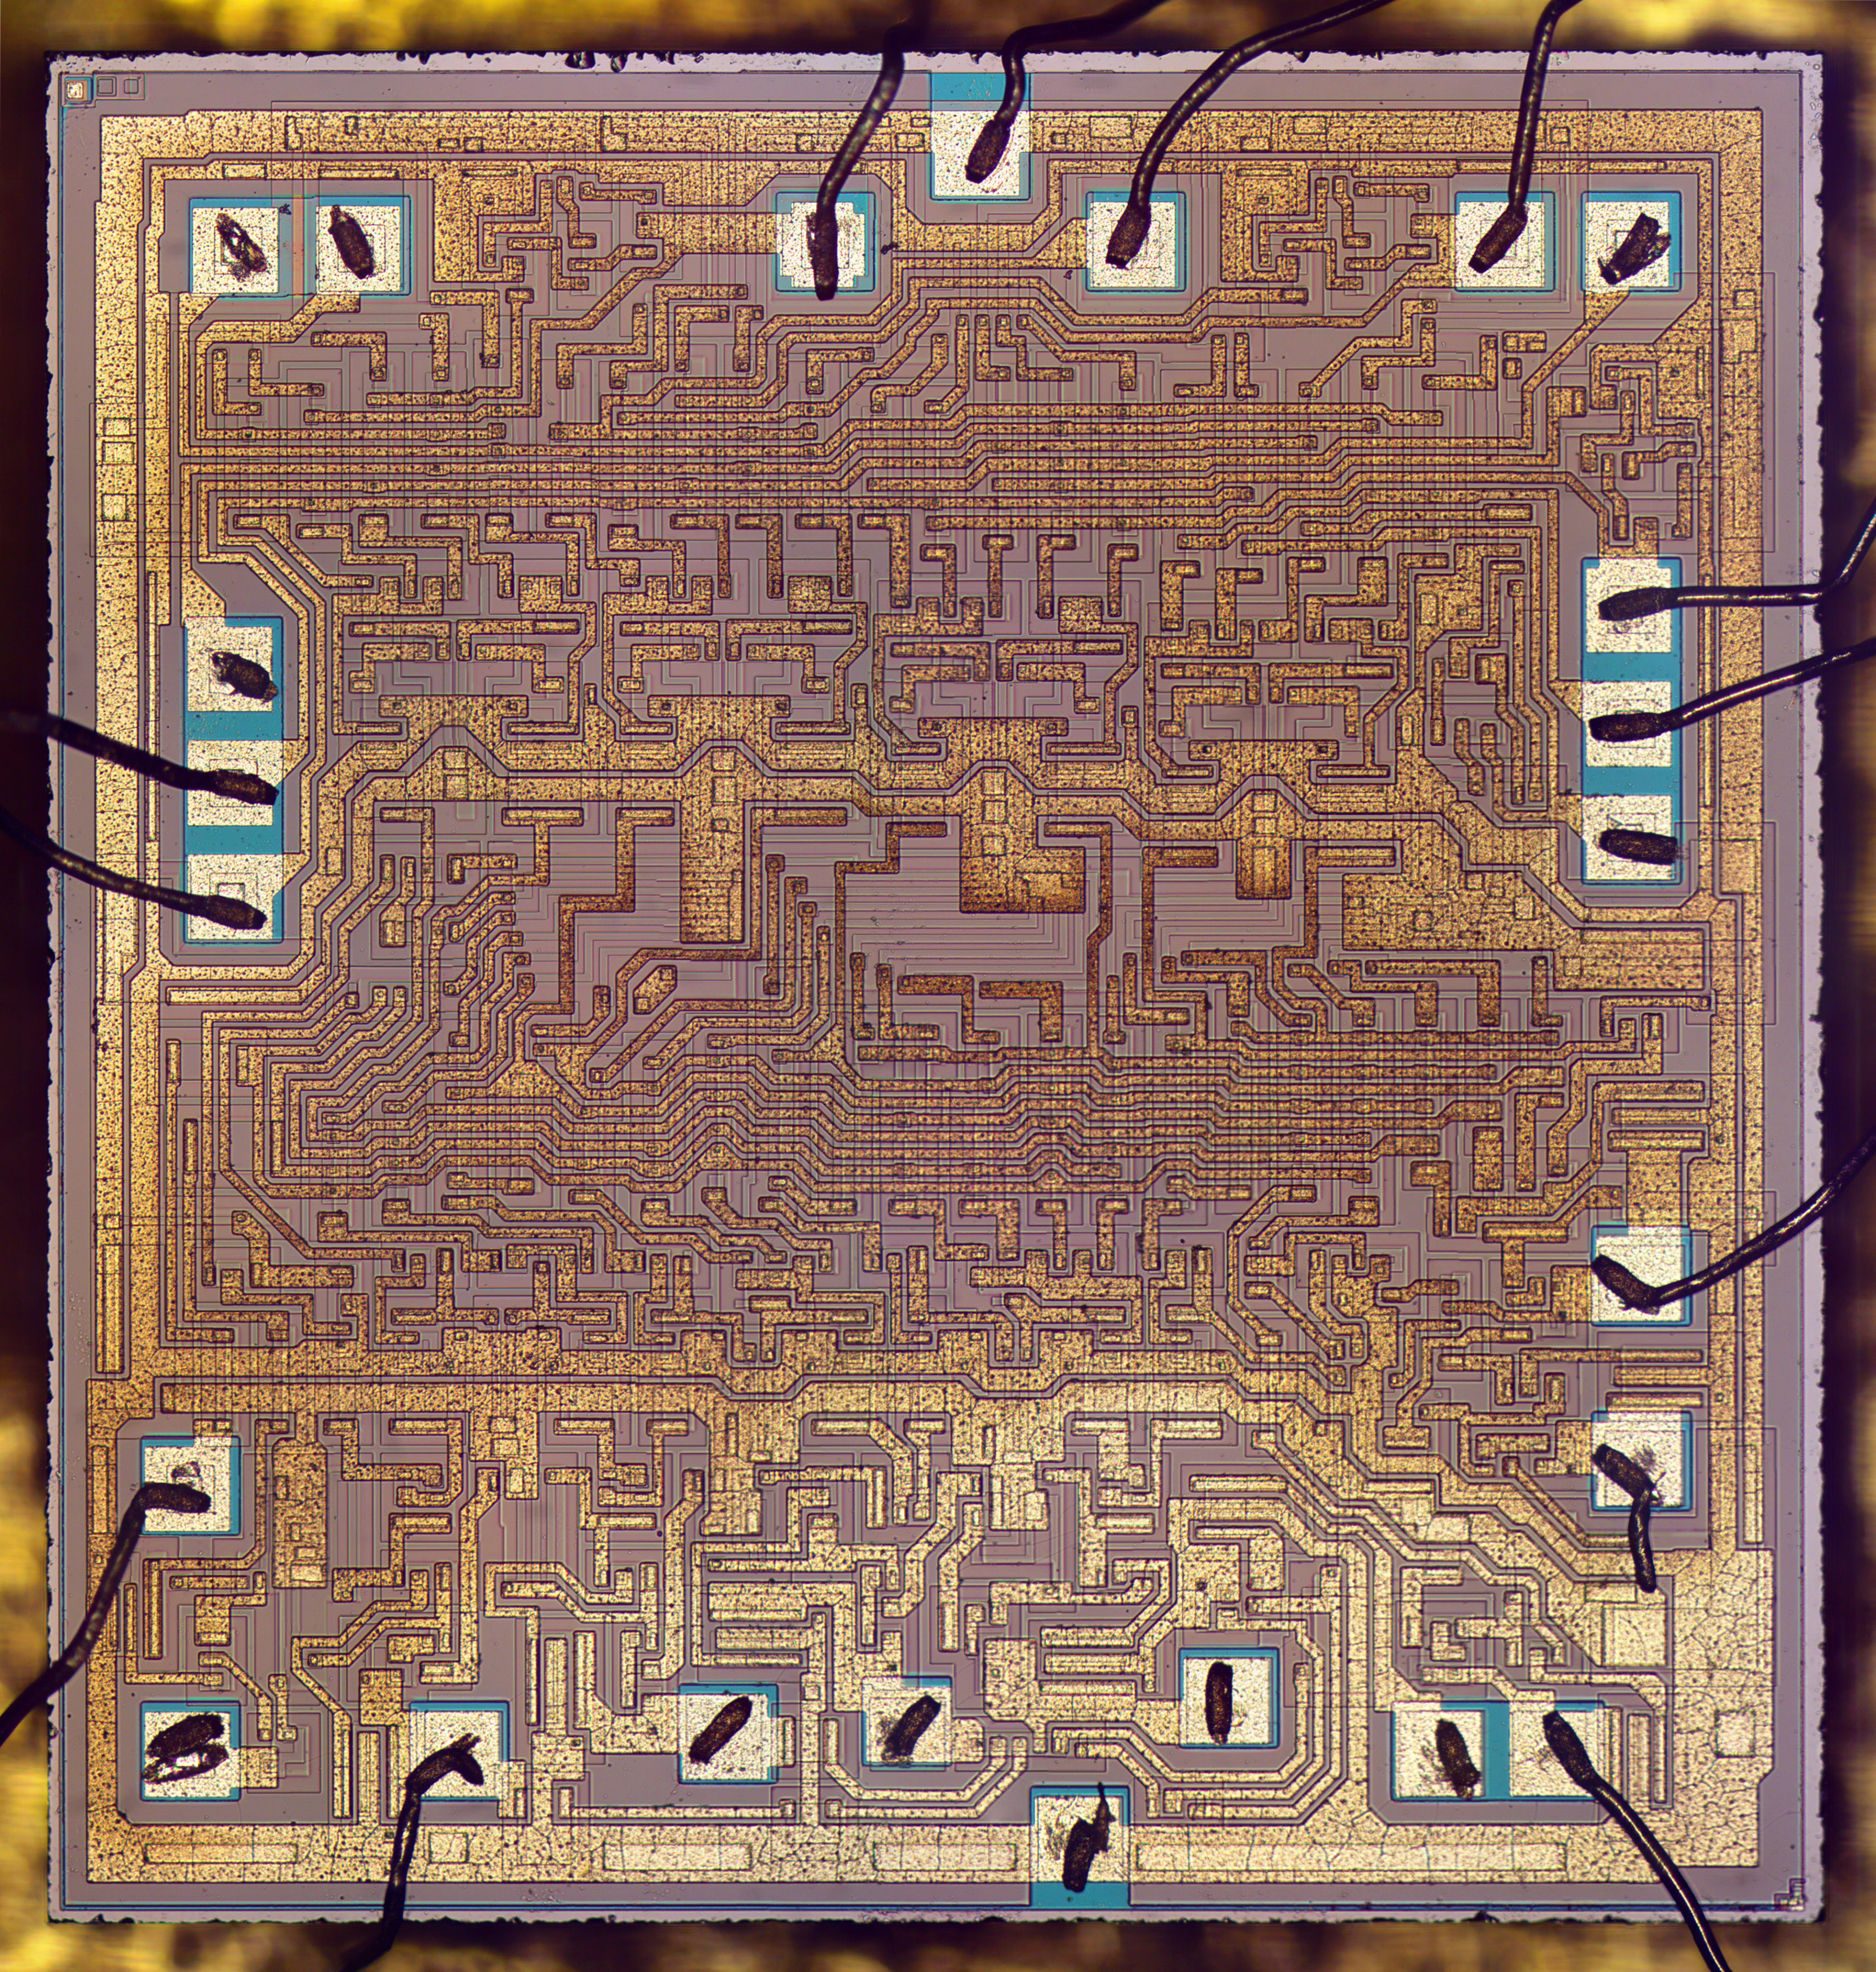 Inside The Vintage 74181 Alu Chip How It Works And Why Its So Strange 1 Bit Logic Diagram Die Photo Of Metal Layer Is Visible